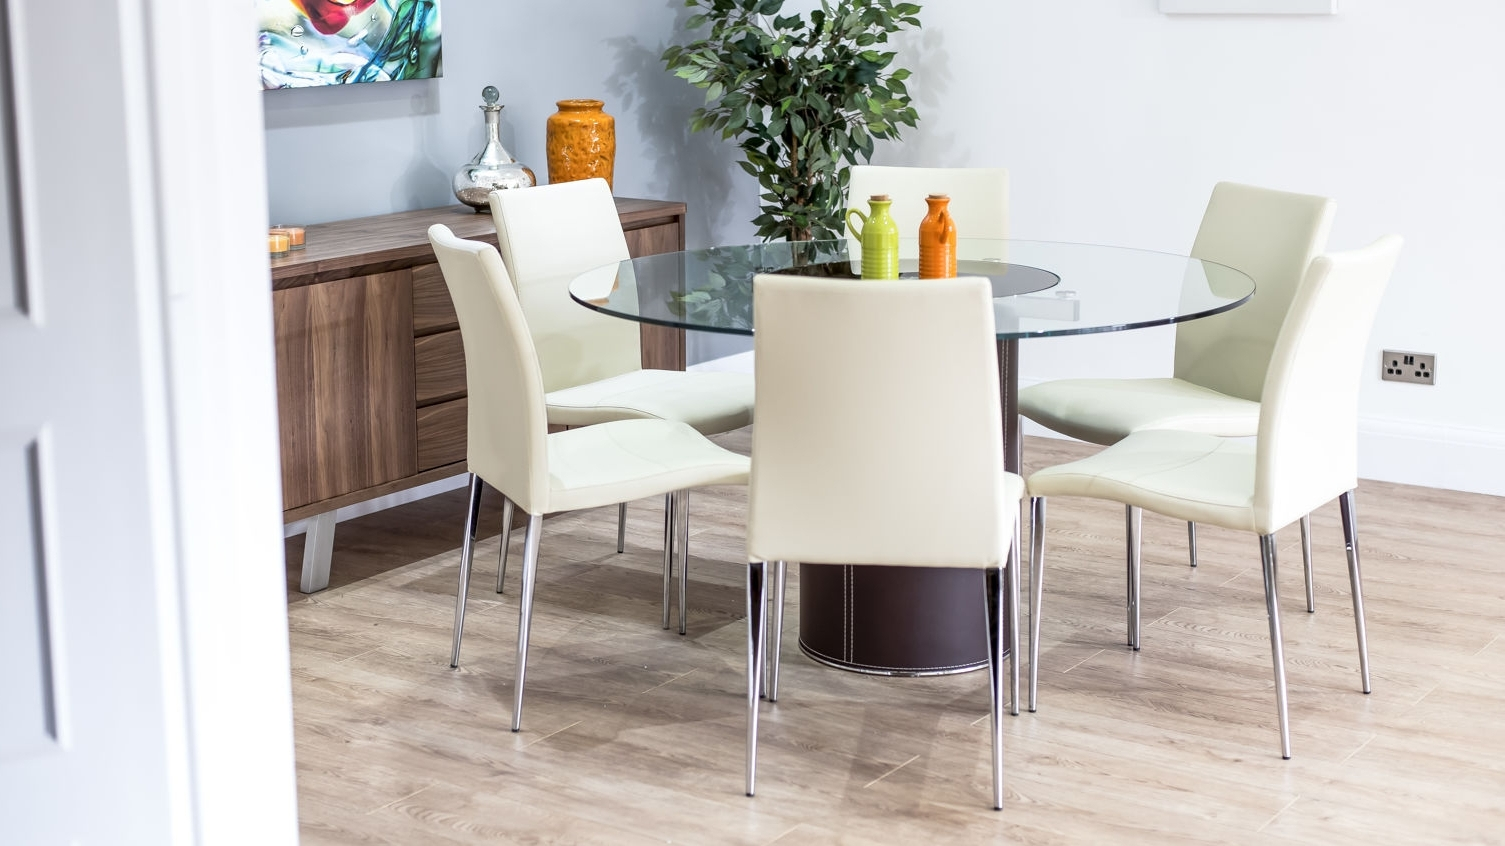 6 Seater Round Dining Table Sets • Table Setting Design throughout Most Recent 6 Seater Round Dining Tables